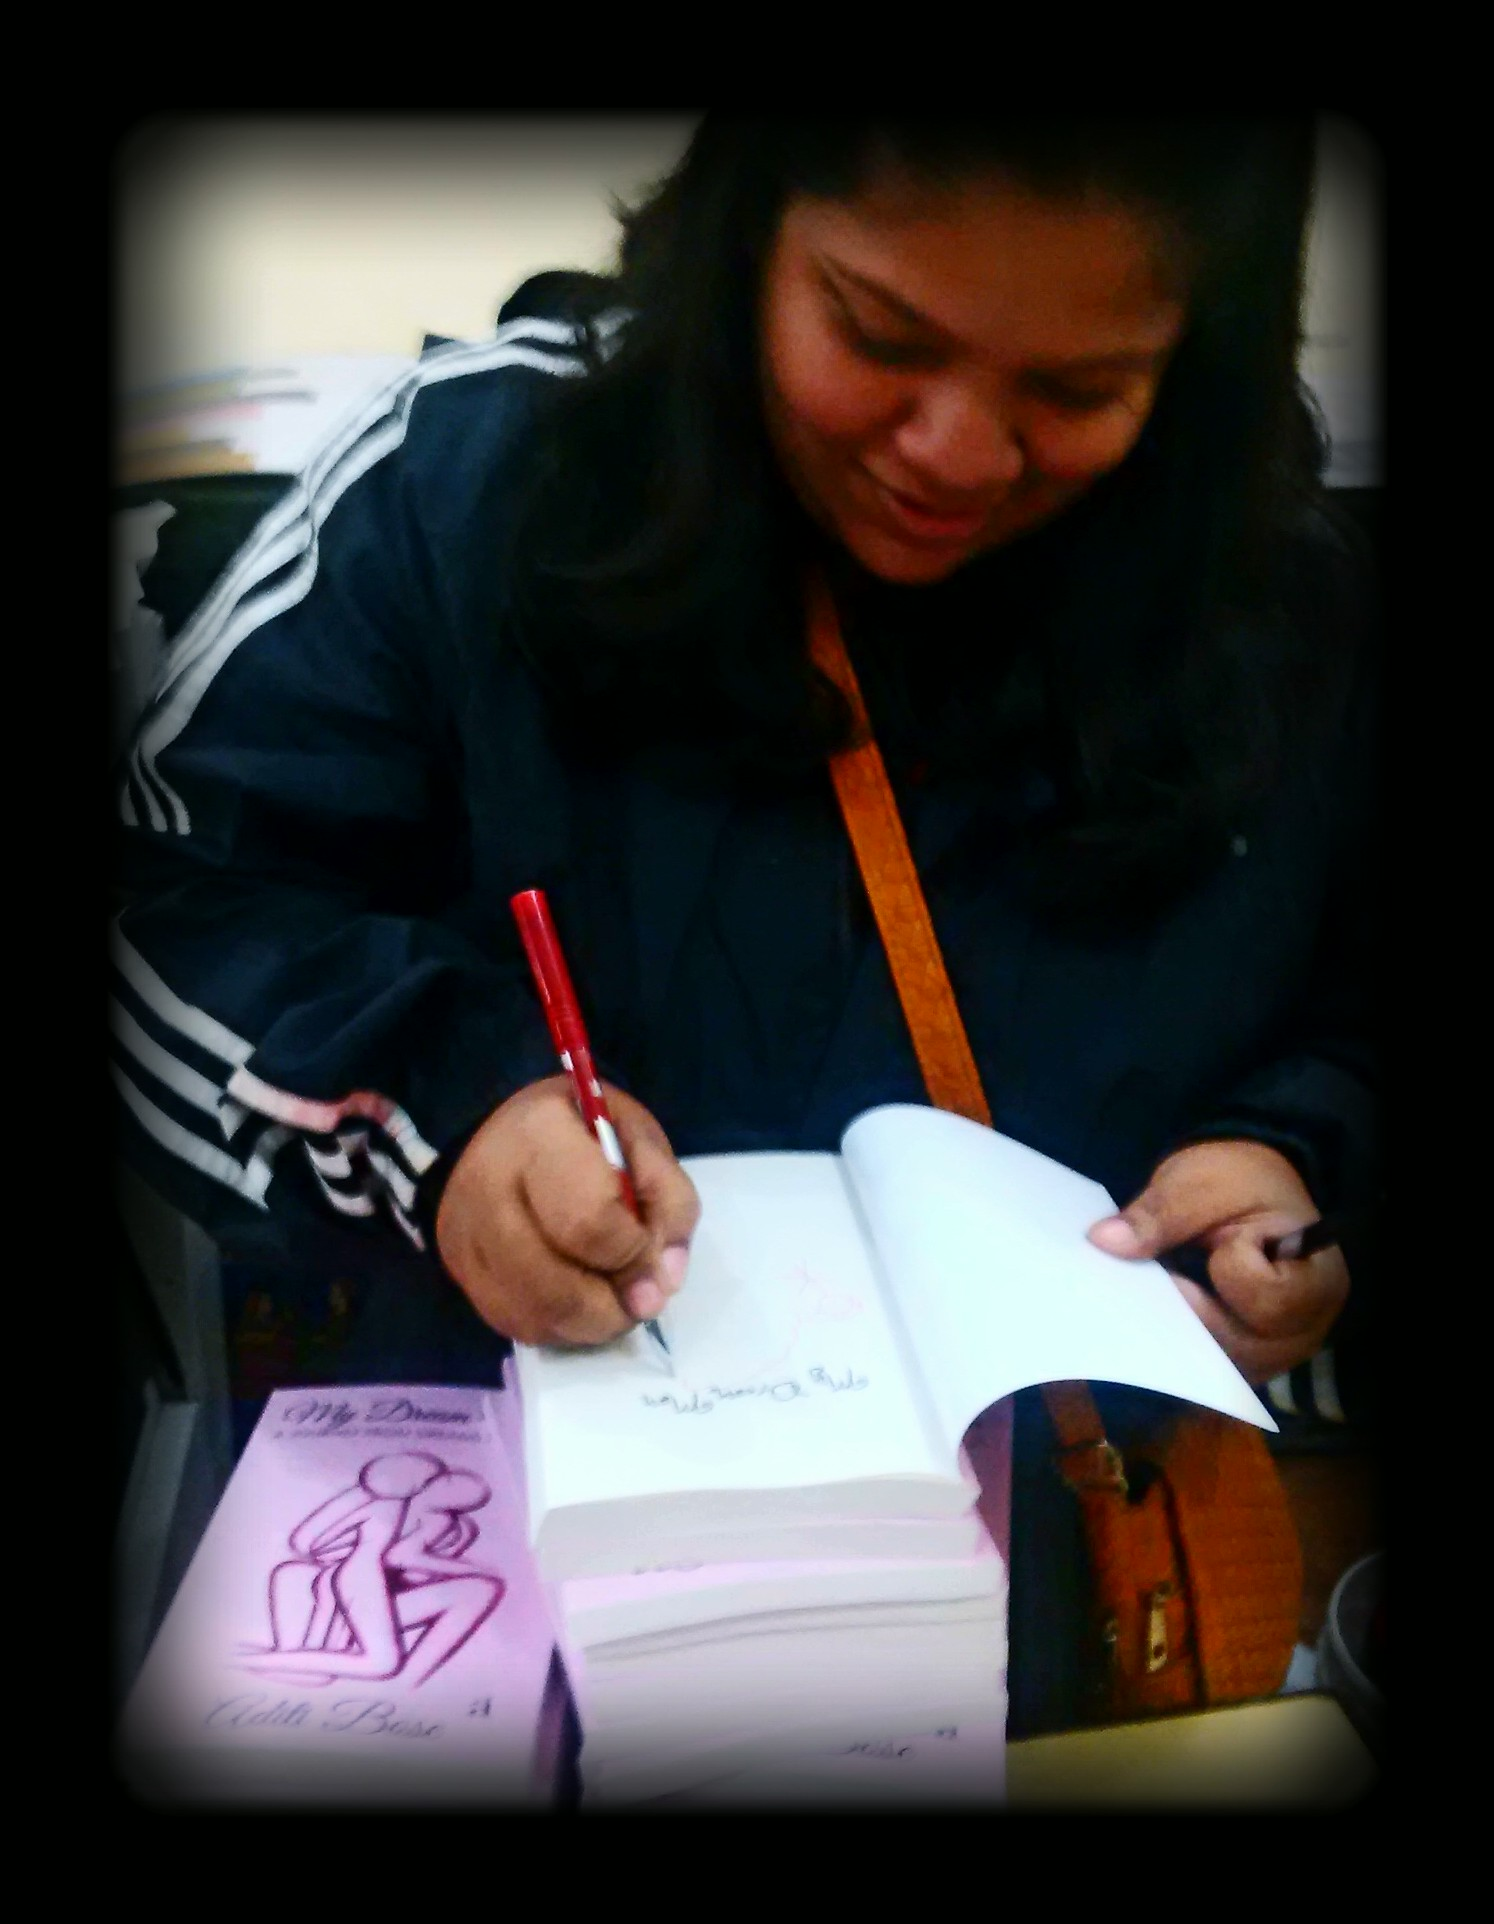 Aditi The author